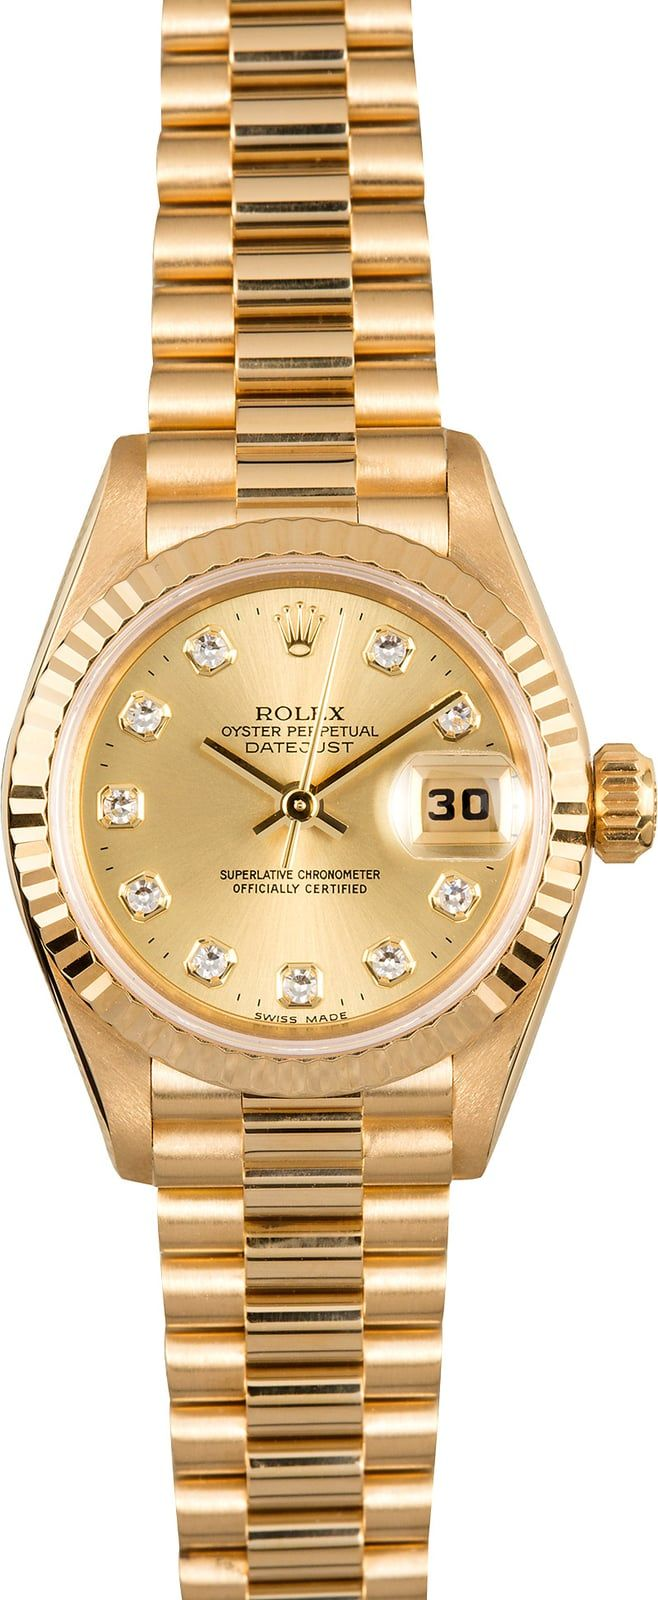 Manufacturer: Rolex Model : DateJust 69178 Serial/Year: T - 1995-1997 Grade: (What's This?) II Gender: Ladies Features: Automatic 2135 movement w/ date, quickset date, scratch-resistant sapphire crystal, waterproof screw-down crown Case: 18k yellow gold (26mm) w/ fluted bezel Dial: Champagne w/ 10 diamond hour markers Bracelet: 18k yellow gold Rolex President bracelet w/ hidden crown clasp Box & Papers: Original Rolex box, booklets, hang tags, polishing